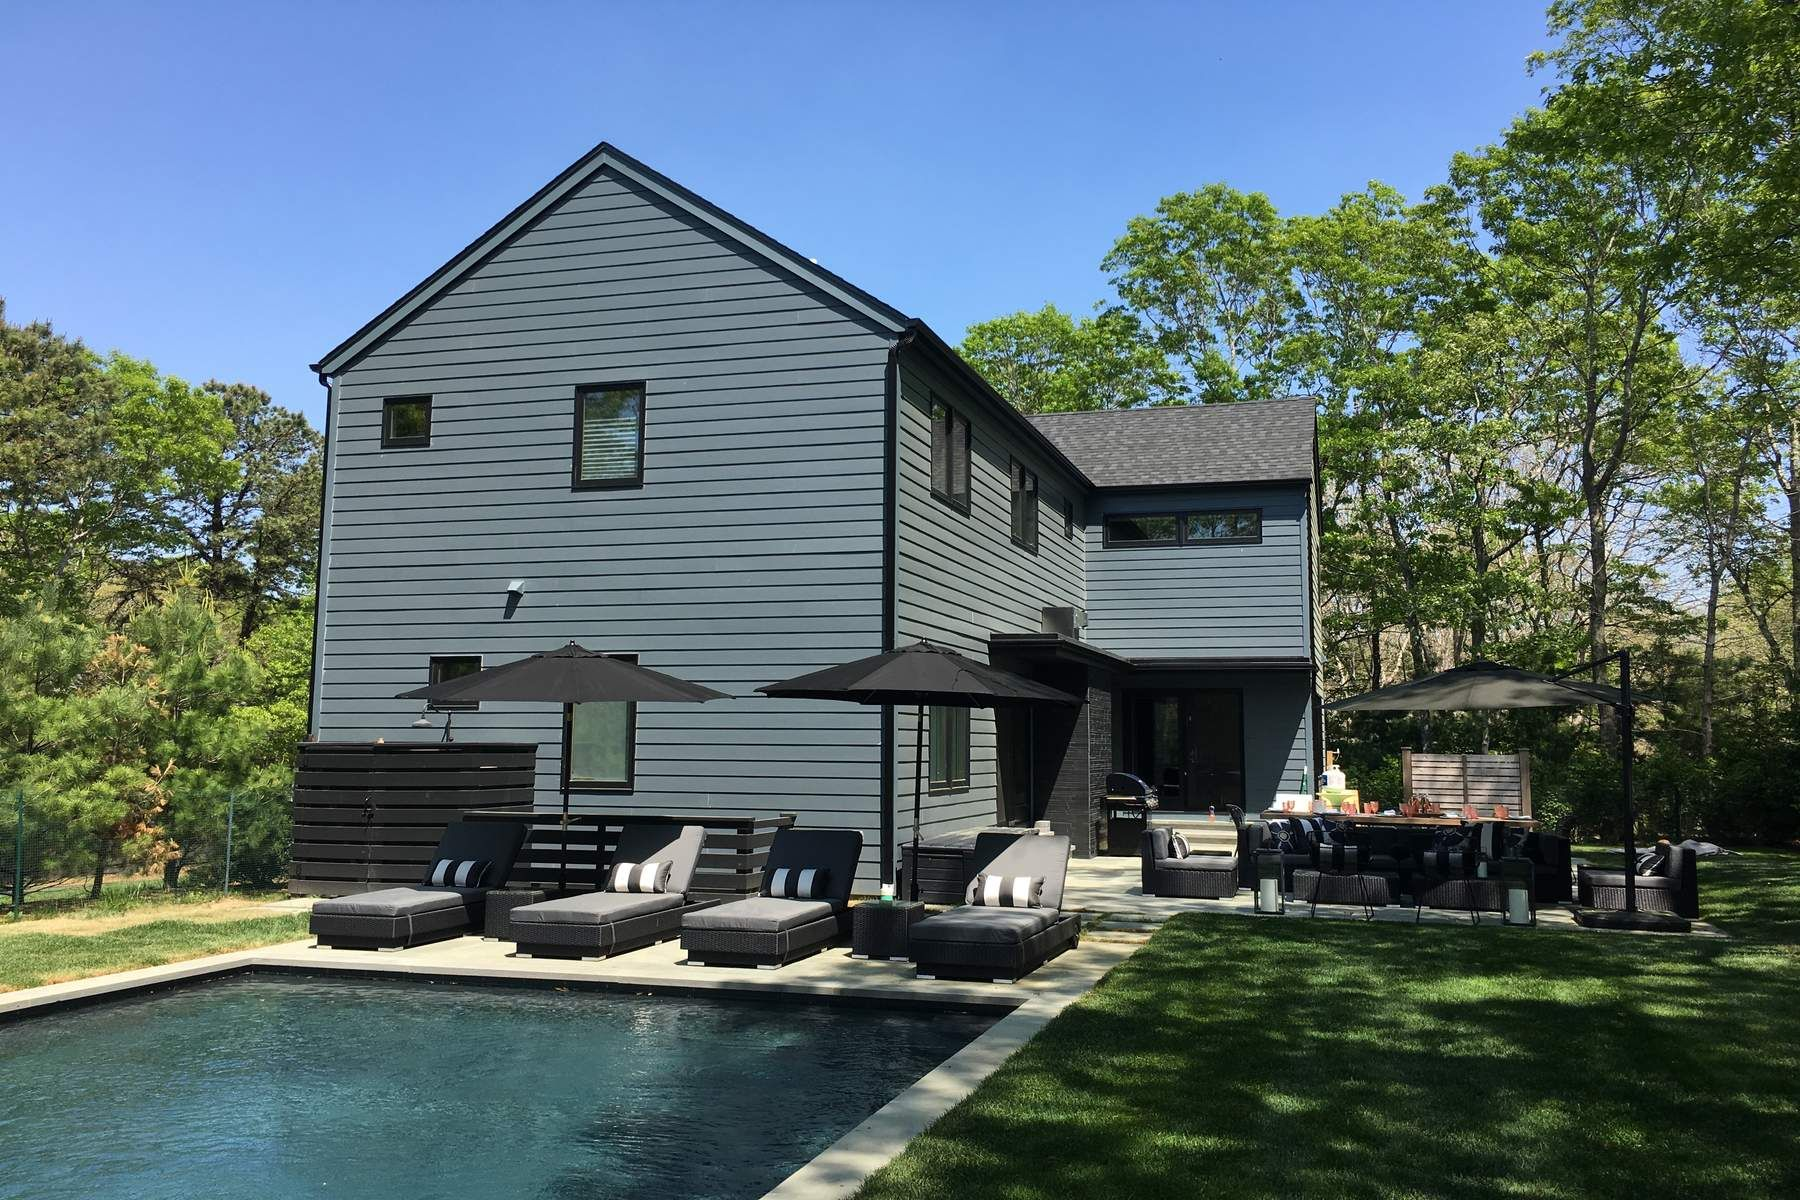 Single Family Home for Rent at GREAT STYLE WITH POOL IN EAST HAMPTON East Hampton, New York 11937 United States